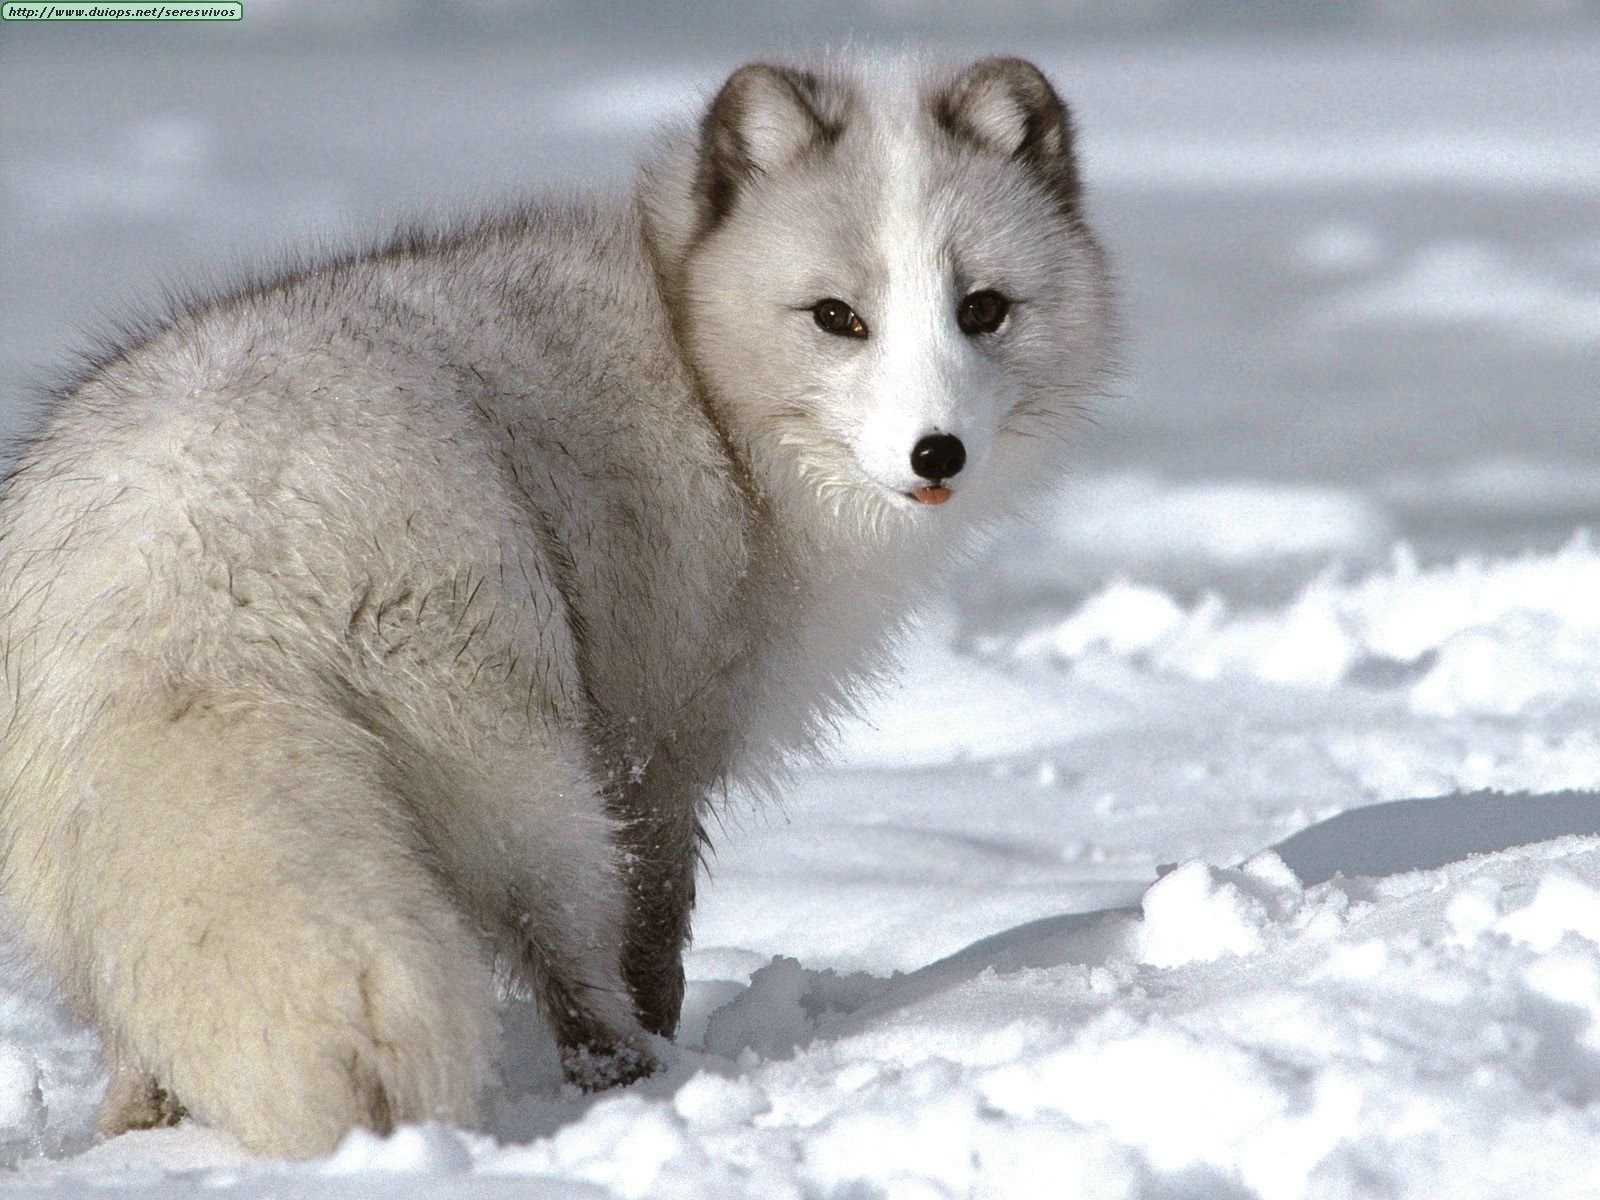 My own thoughts Arctic Polar Fox of Tundra